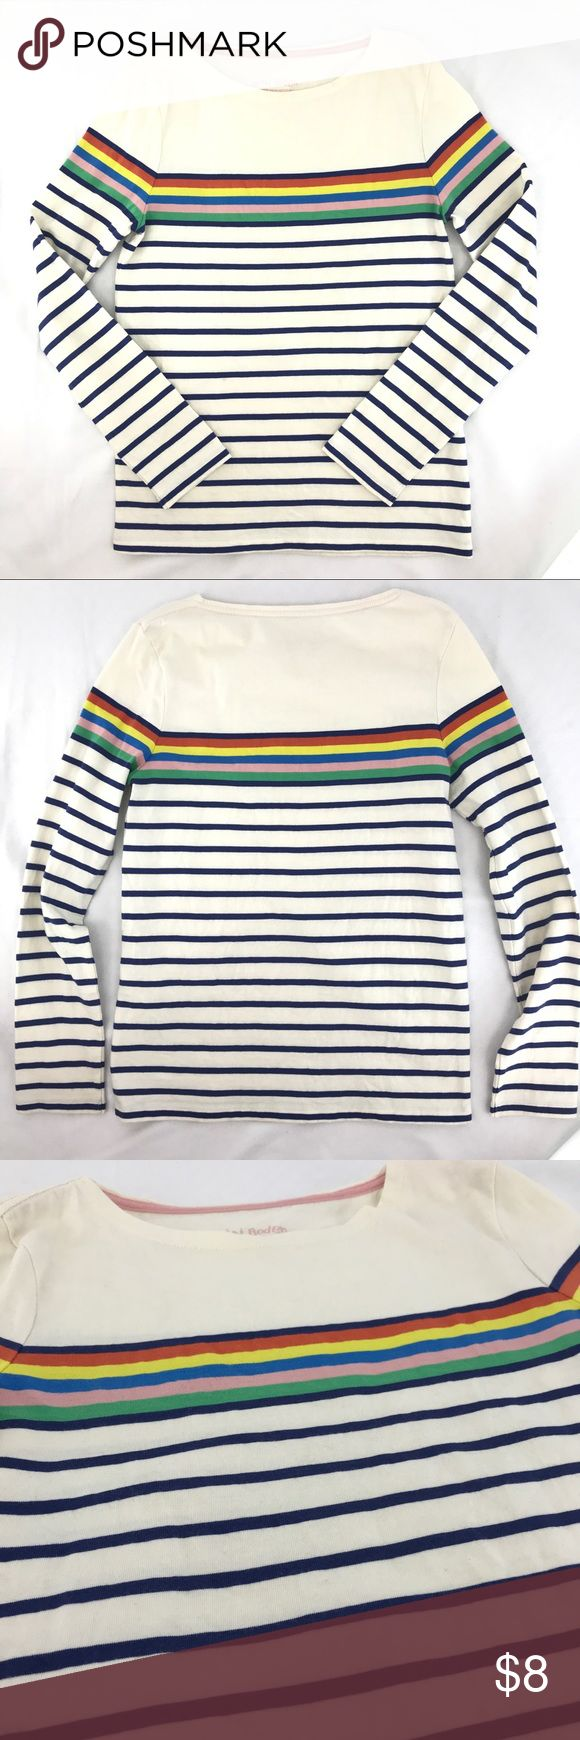 Mini Boden Girls 11-12 Striped Long Sleeve Top Mini Boden girl's multi-color striped long sleeve knit top * Size 11-12 Yr * 100% cotton * Gently used with small, faint spot on front - please see photos for details Mini Boden Shirts & Tops Tees - Long Sleeve